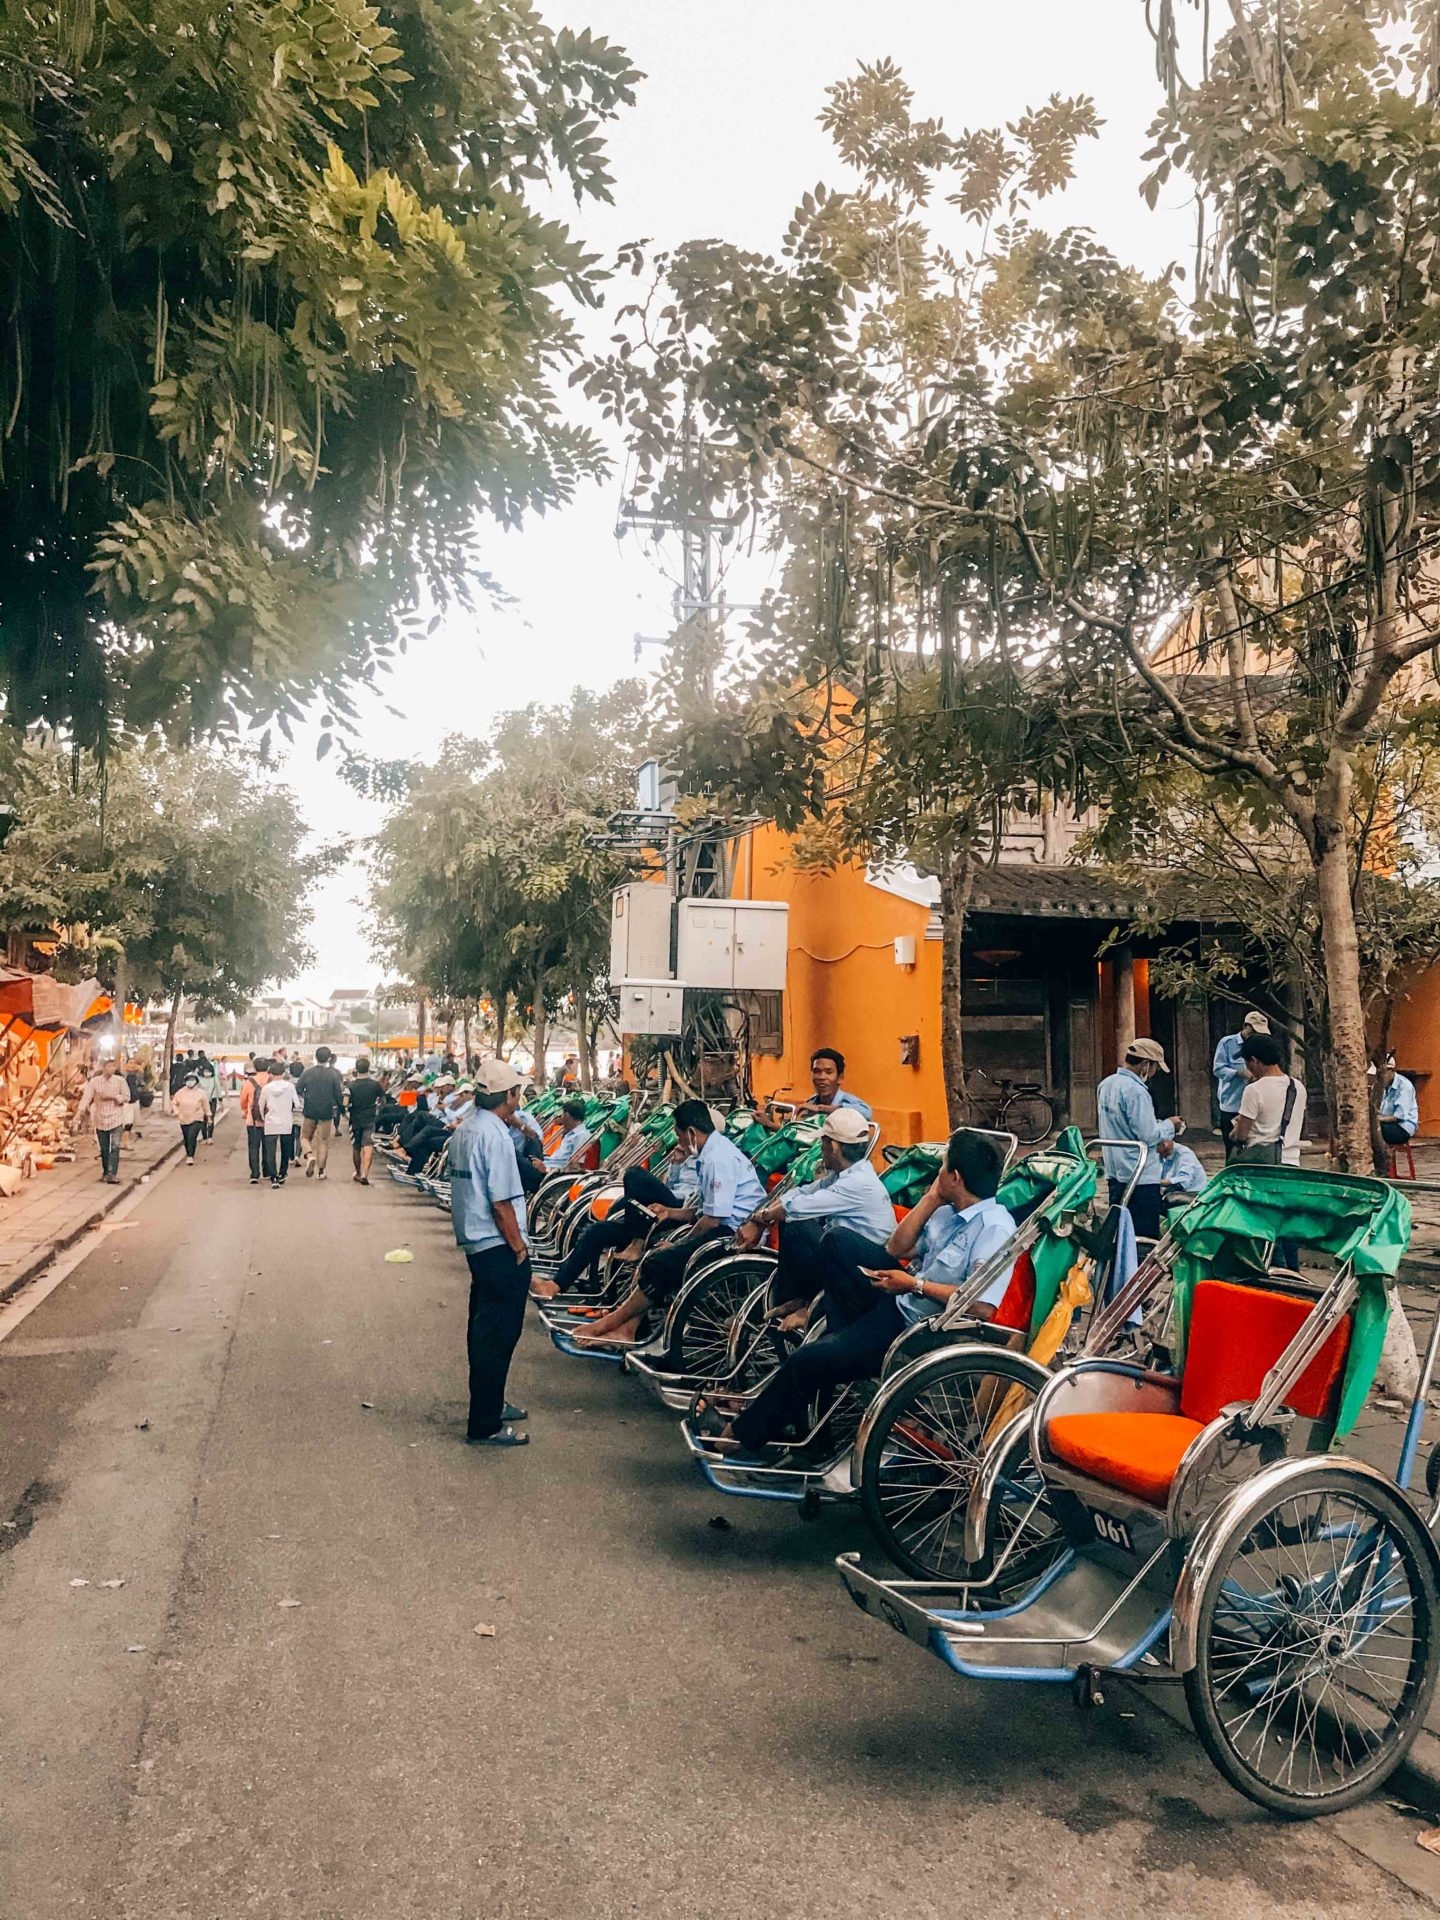 The amount of rickshaws in Hoi An, Vietnam